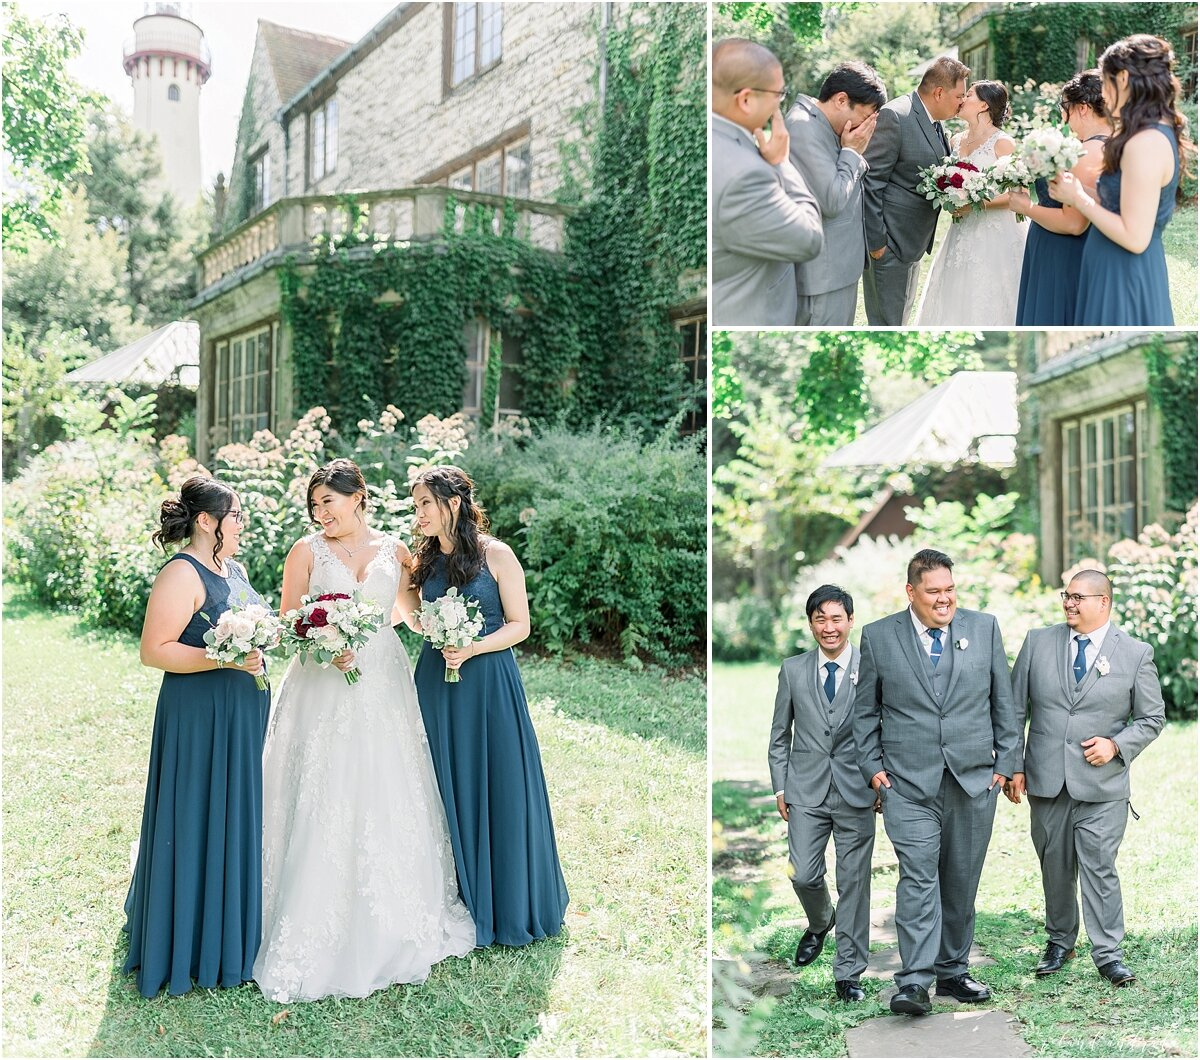 Light and Airy Wedding Photographer Chicago, Furama Chinese Wedding Photographer + Chicago Latino Photography + Naperville Wedding Photographer + Chicago Engagement Photographer + Best Photographer In Chicago_0028.jpg